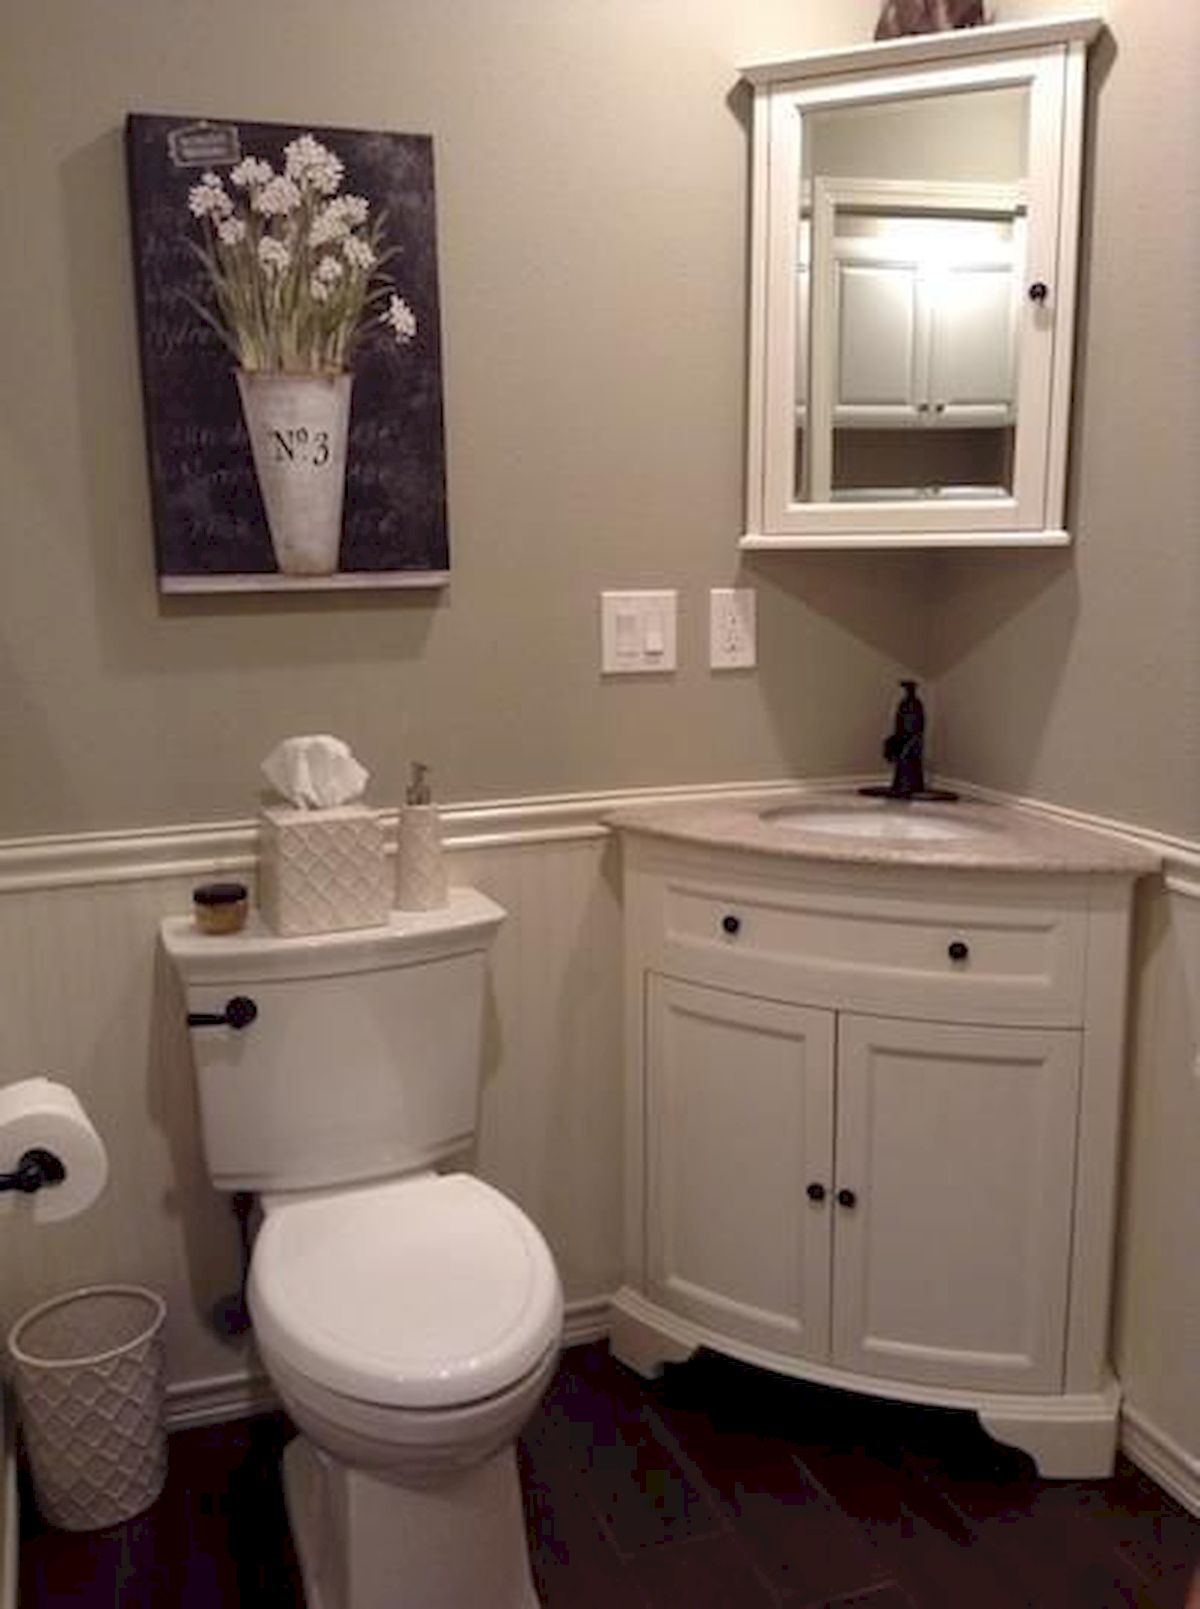 50 Best DIY Storage Design Ideas To Maximize Your Small Bathroom Space (32)